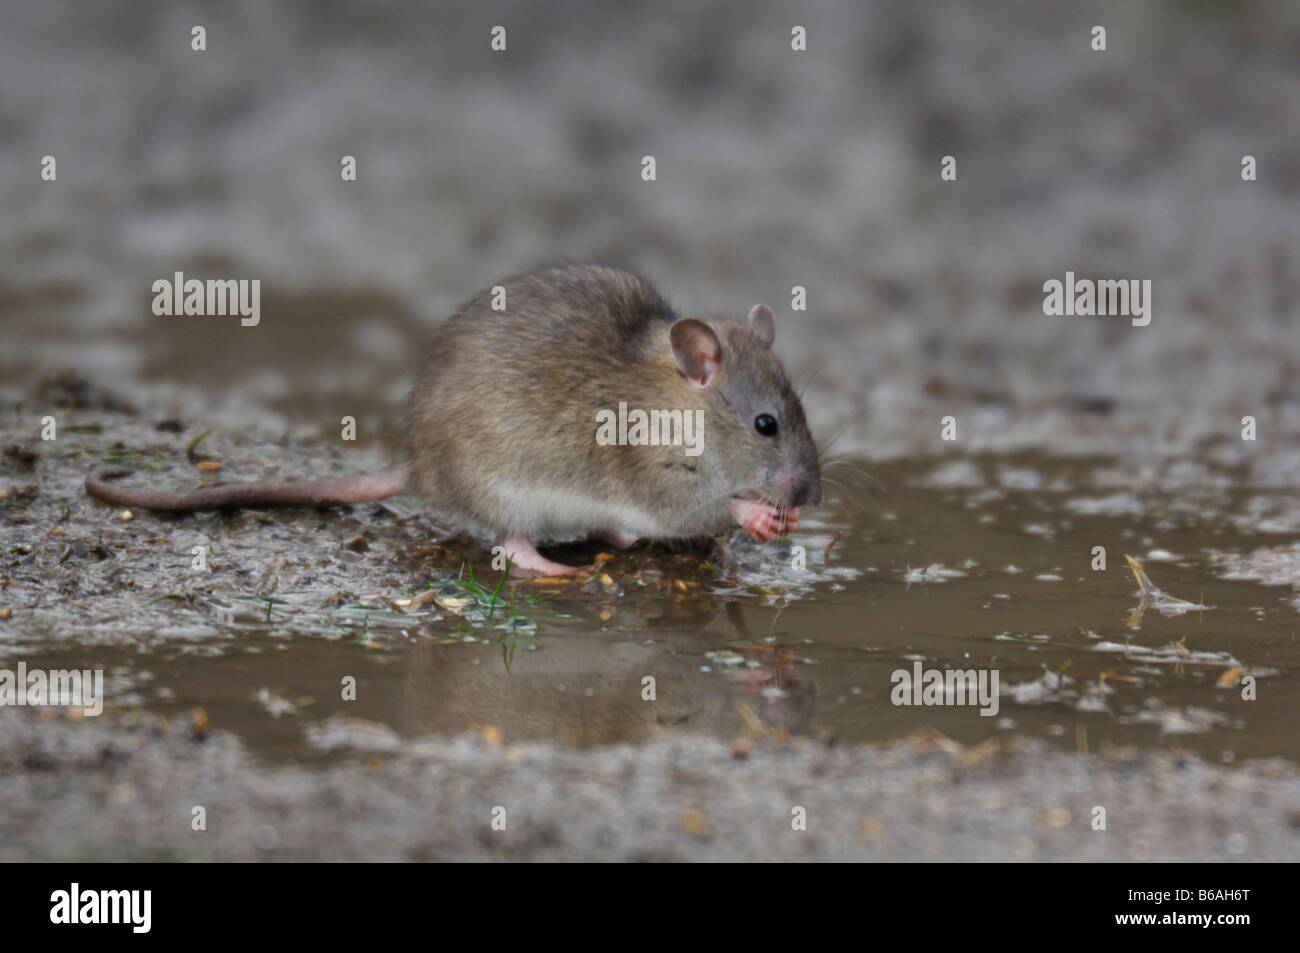 Brown Rat(Rattus norvegicus) drinking from a puddle. - Stock Image